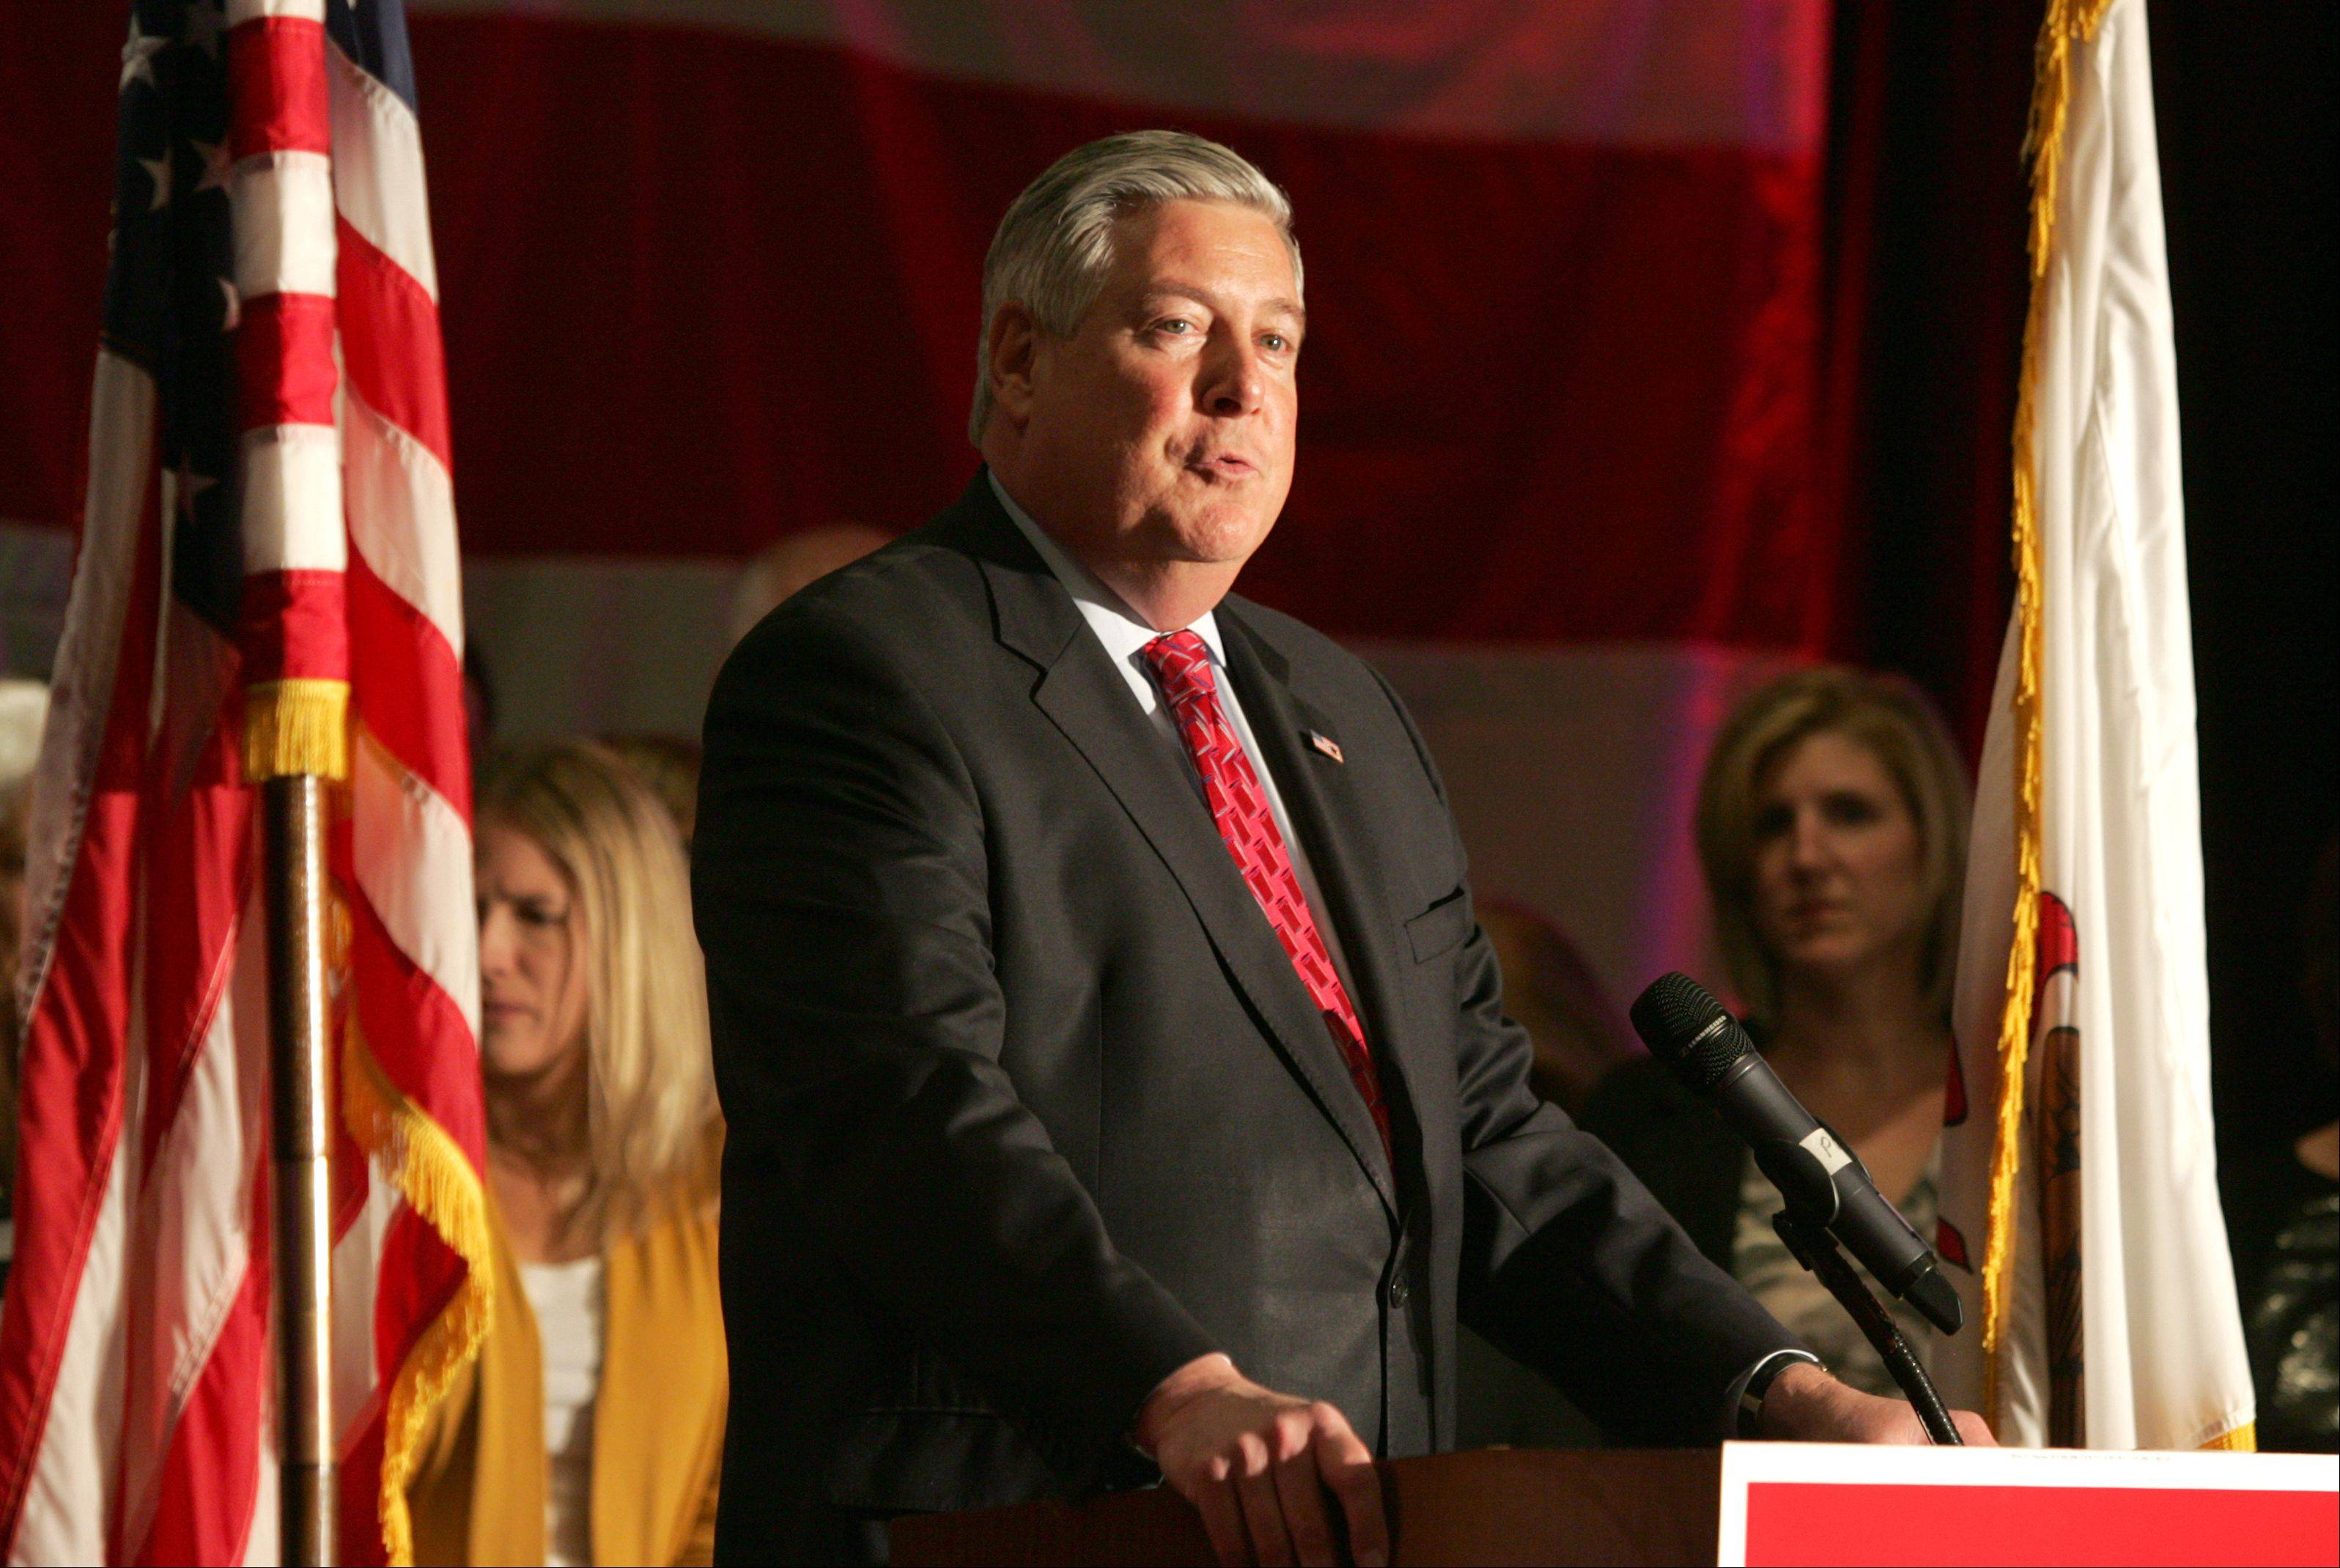 Republicans focusing on 2014 governor's race